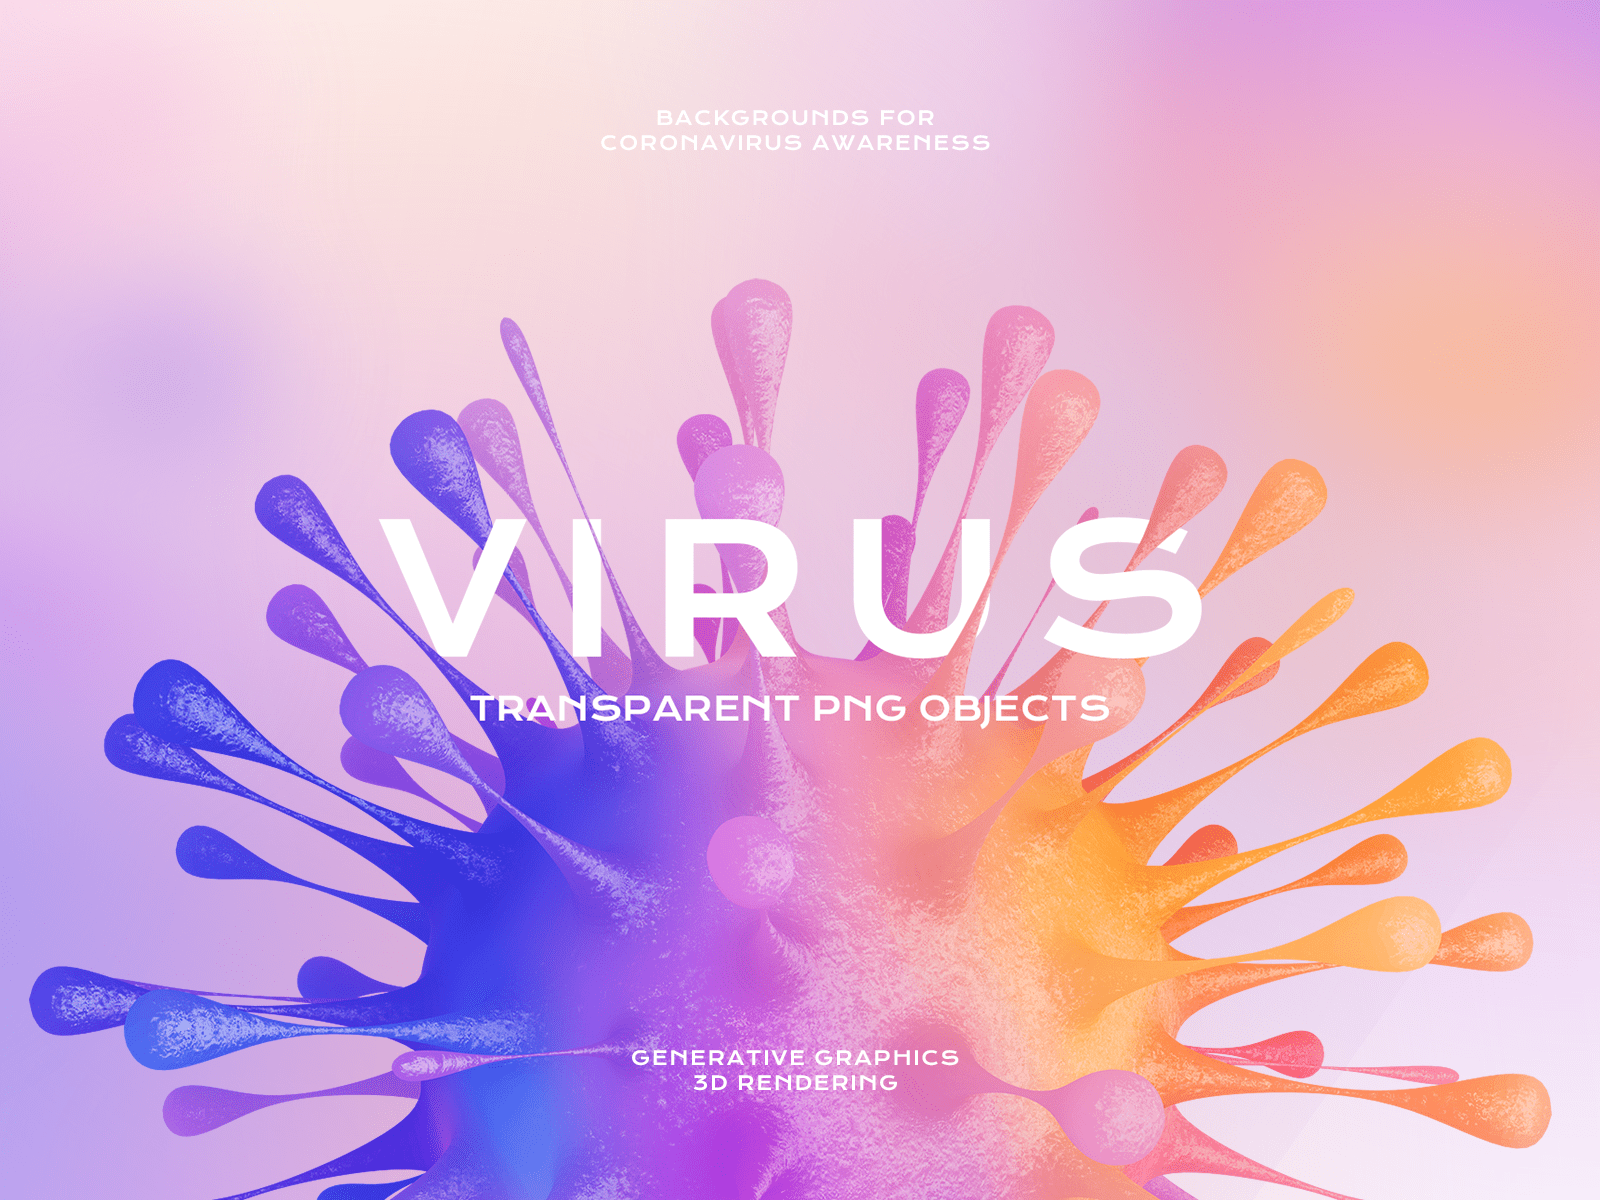 Virus Png Objects For Coronavirus Awareness Free Download By